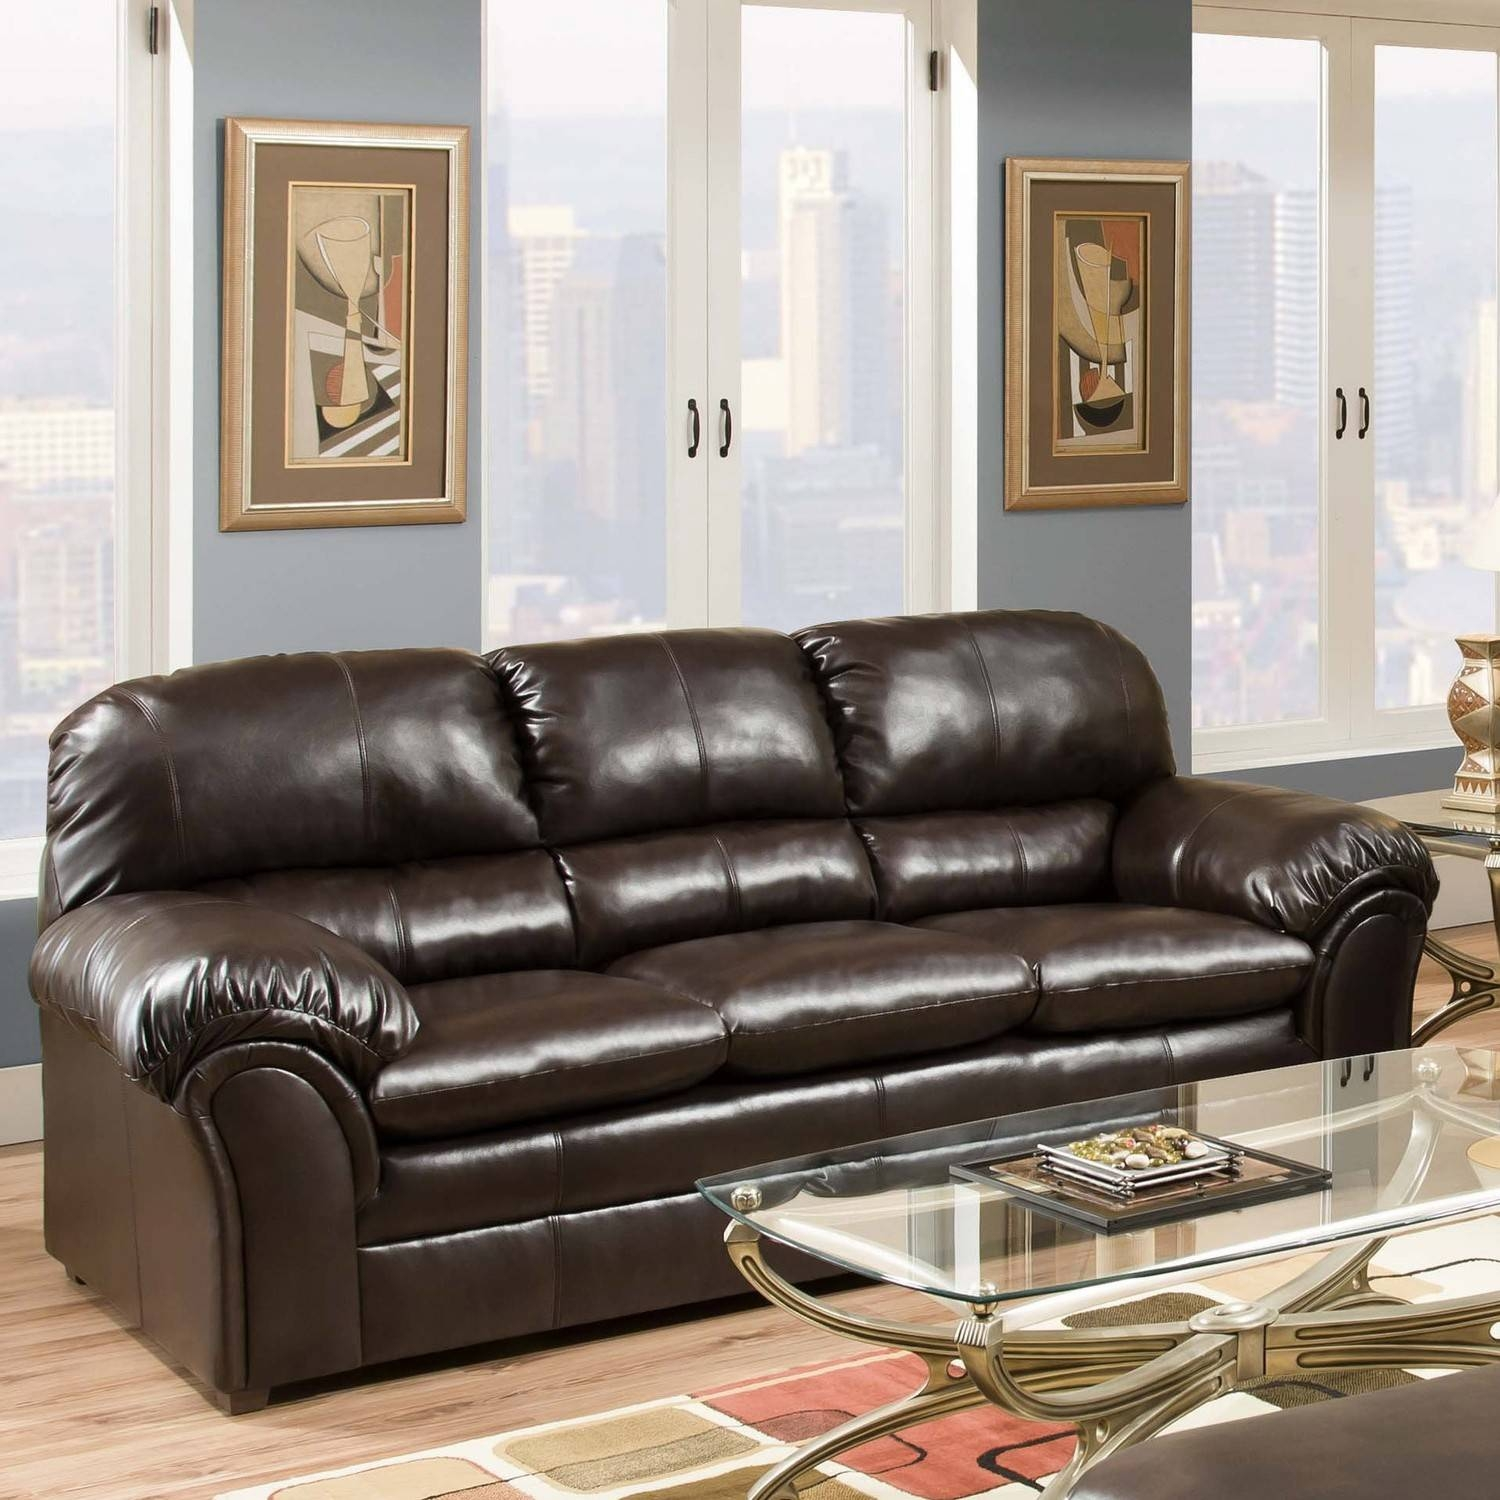 Awesome Faux Leather Sleeper Sofa 28 For Your Living Room Sofa in Faux Leather Sleeper Sofas (Image 3 of 15)